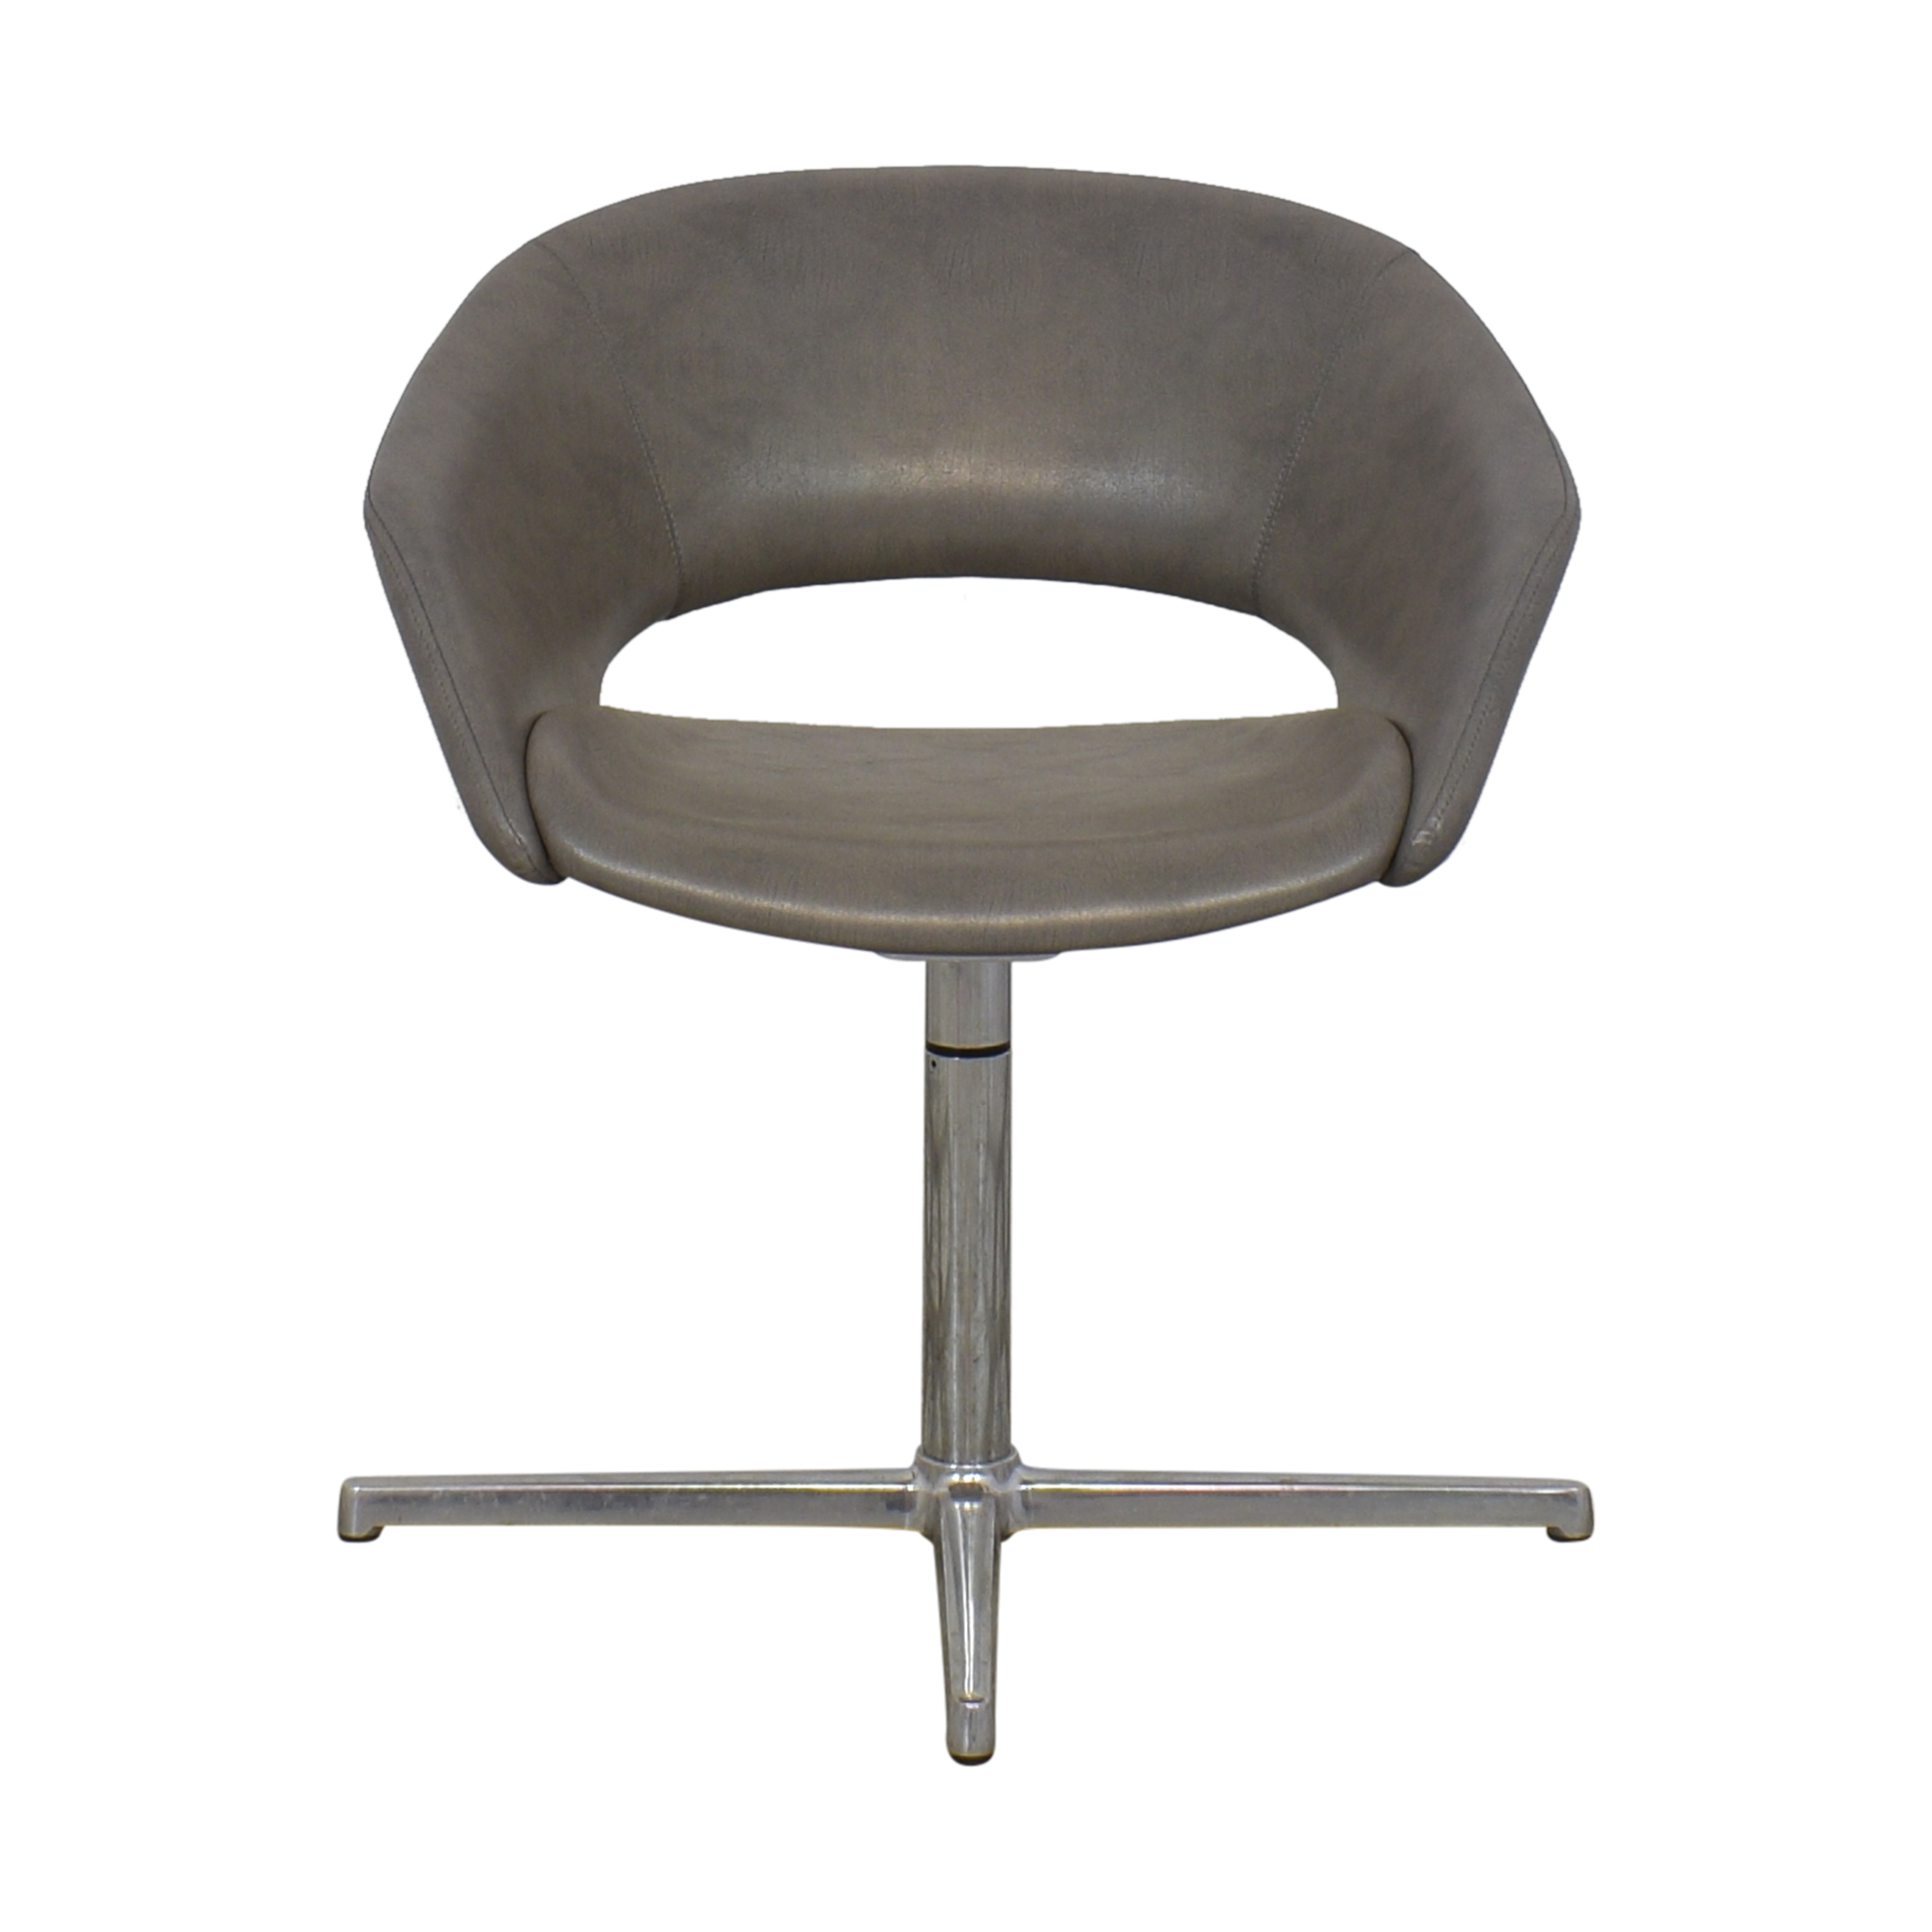 Leland International Leland Mod Pedestal Swivel Chair Chairs